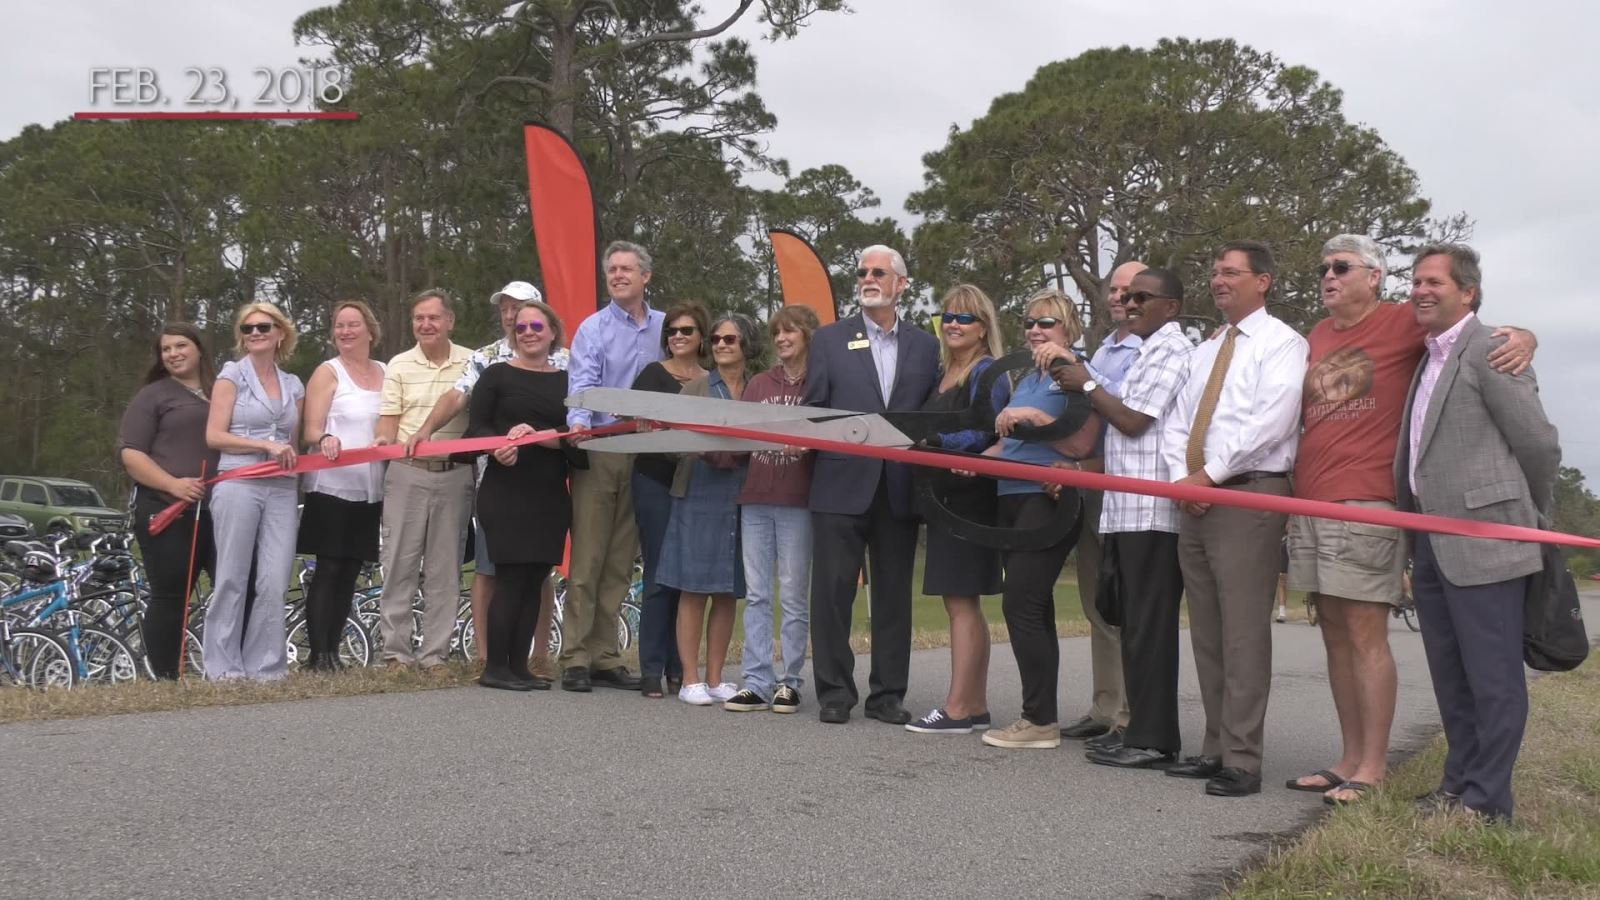 The ribbon cutting at the opening of a large section of trail in Titusville, FL.